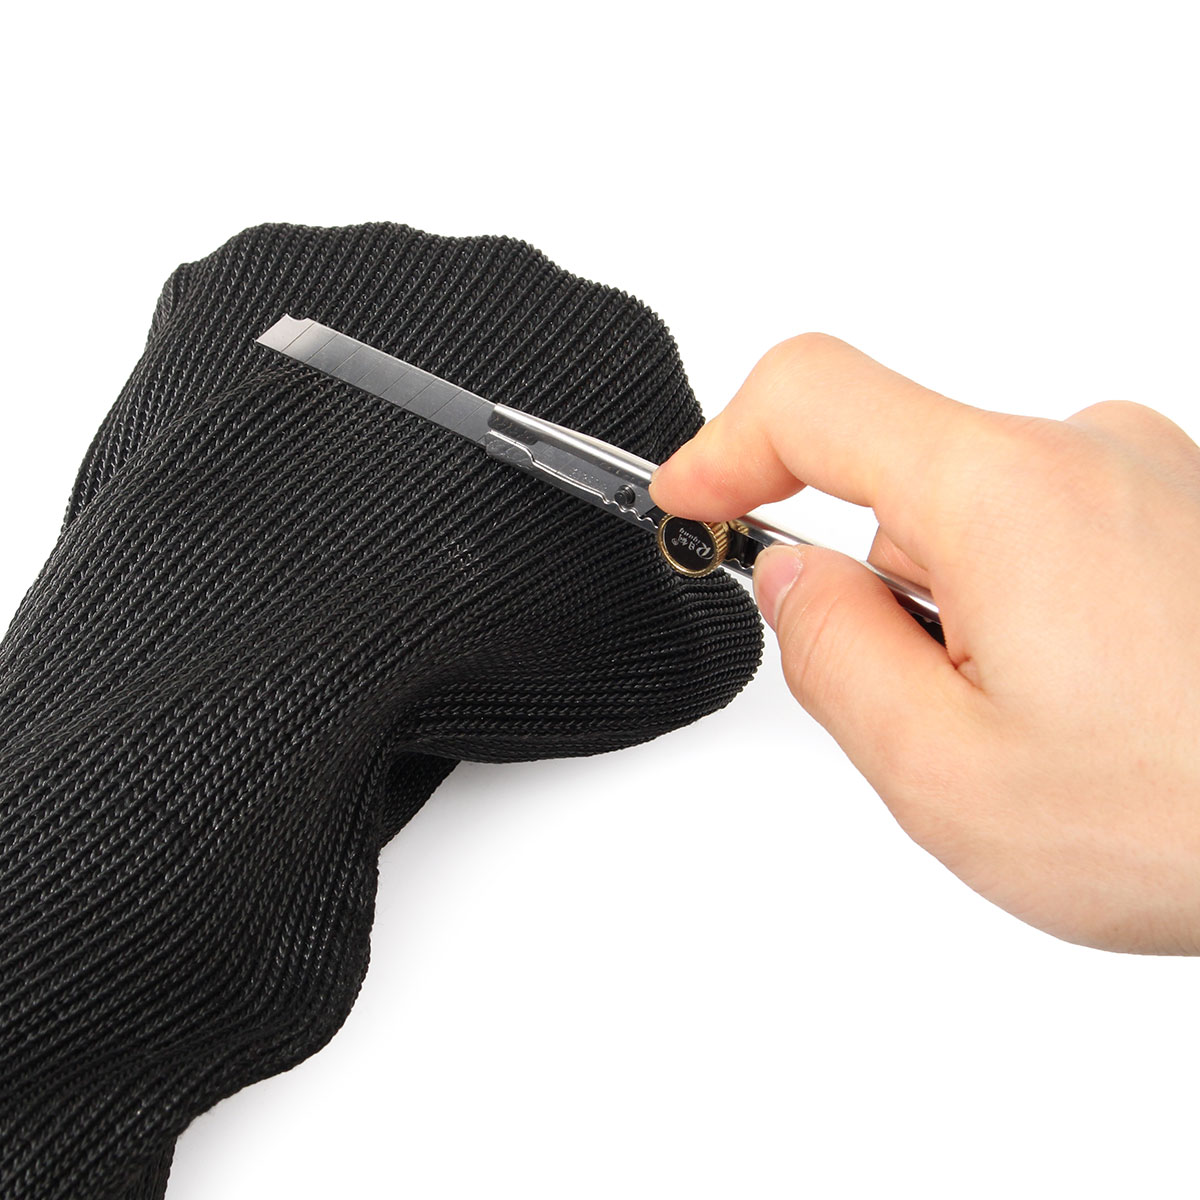 Stainless Steel Wire Safety Sport Cut Resistant Sleeve Work Glove Wrist Armband Protector Glove